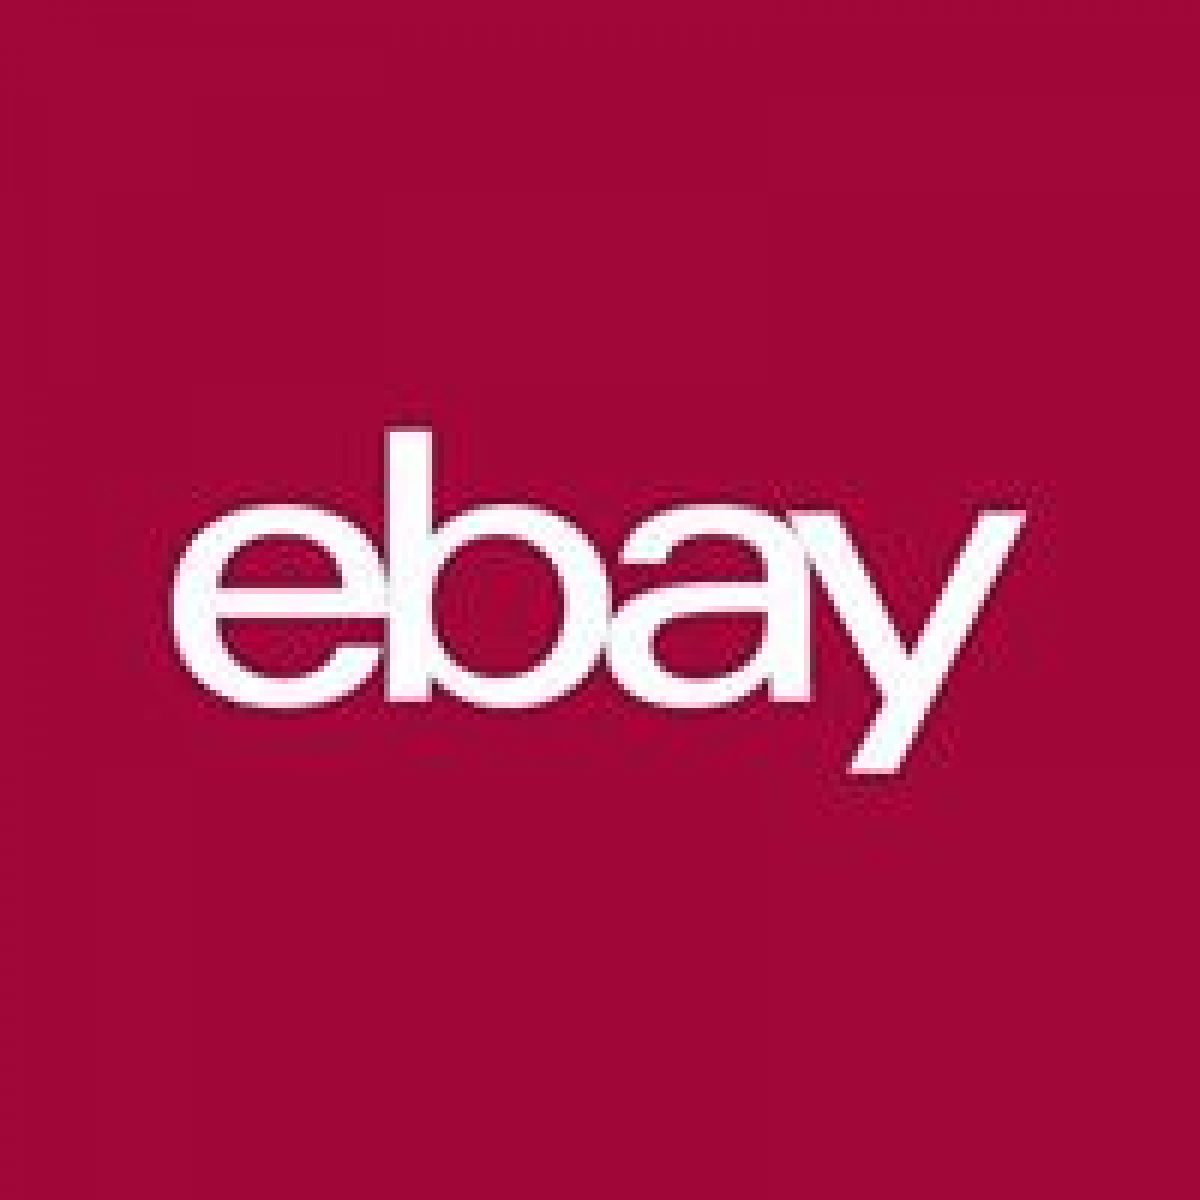 85 Ebay Statistics And Facts 2020 By The Numbers